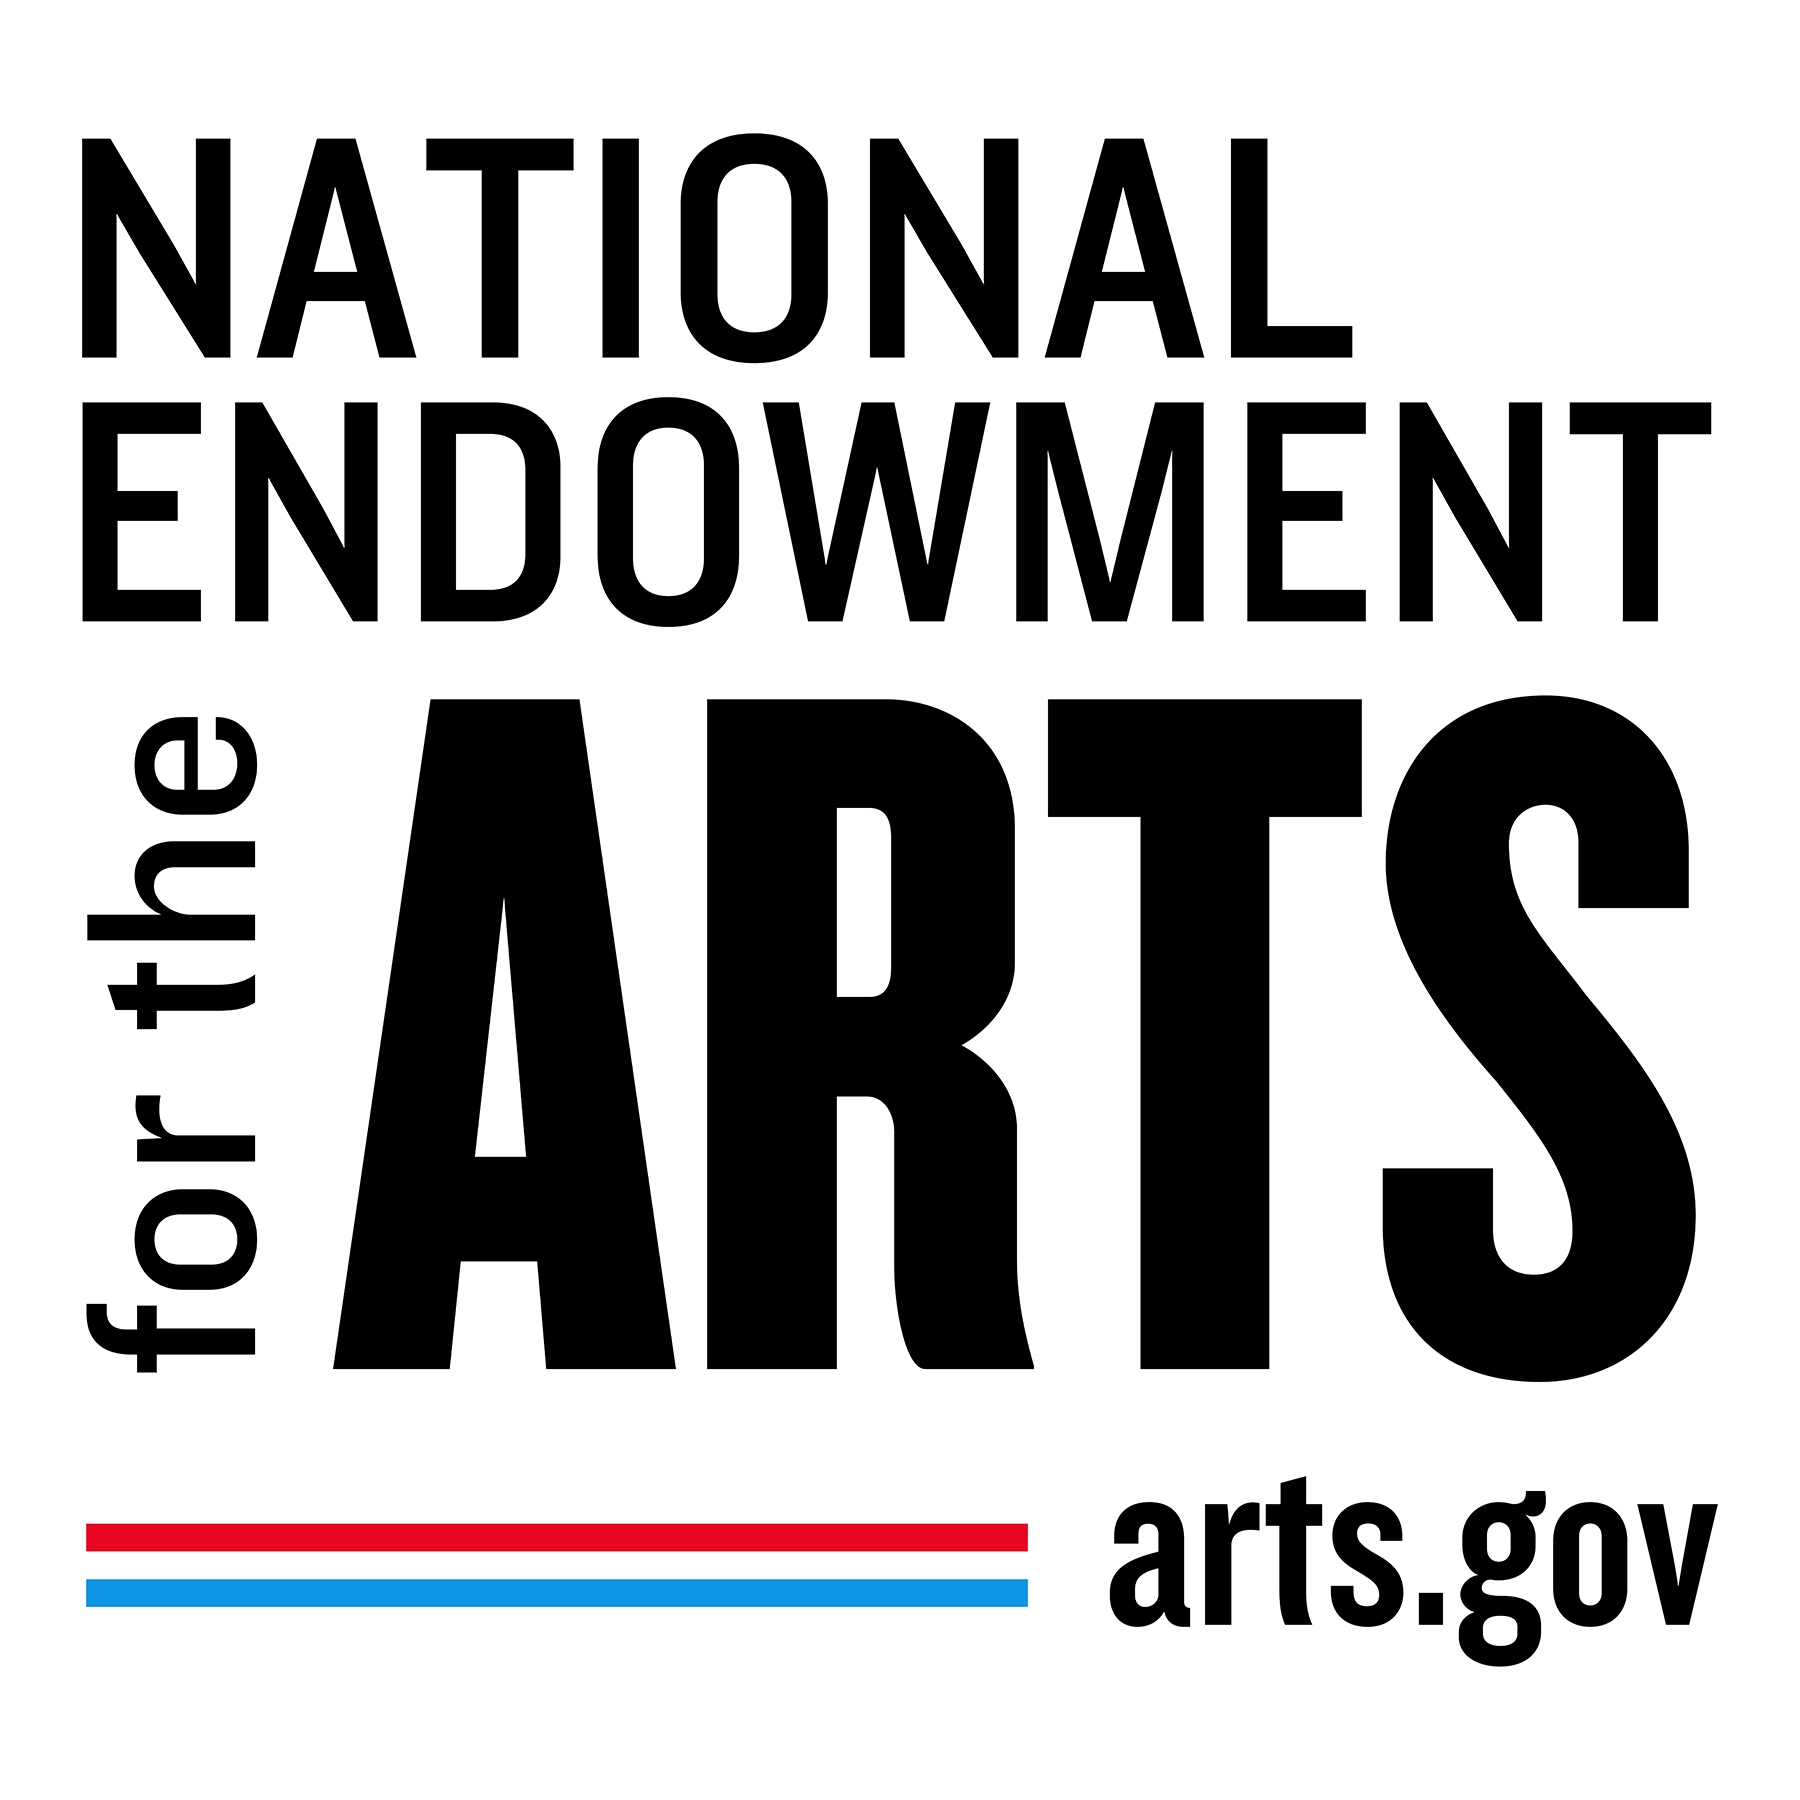 NEA 2018-Square-Logo-with-url2.jpg